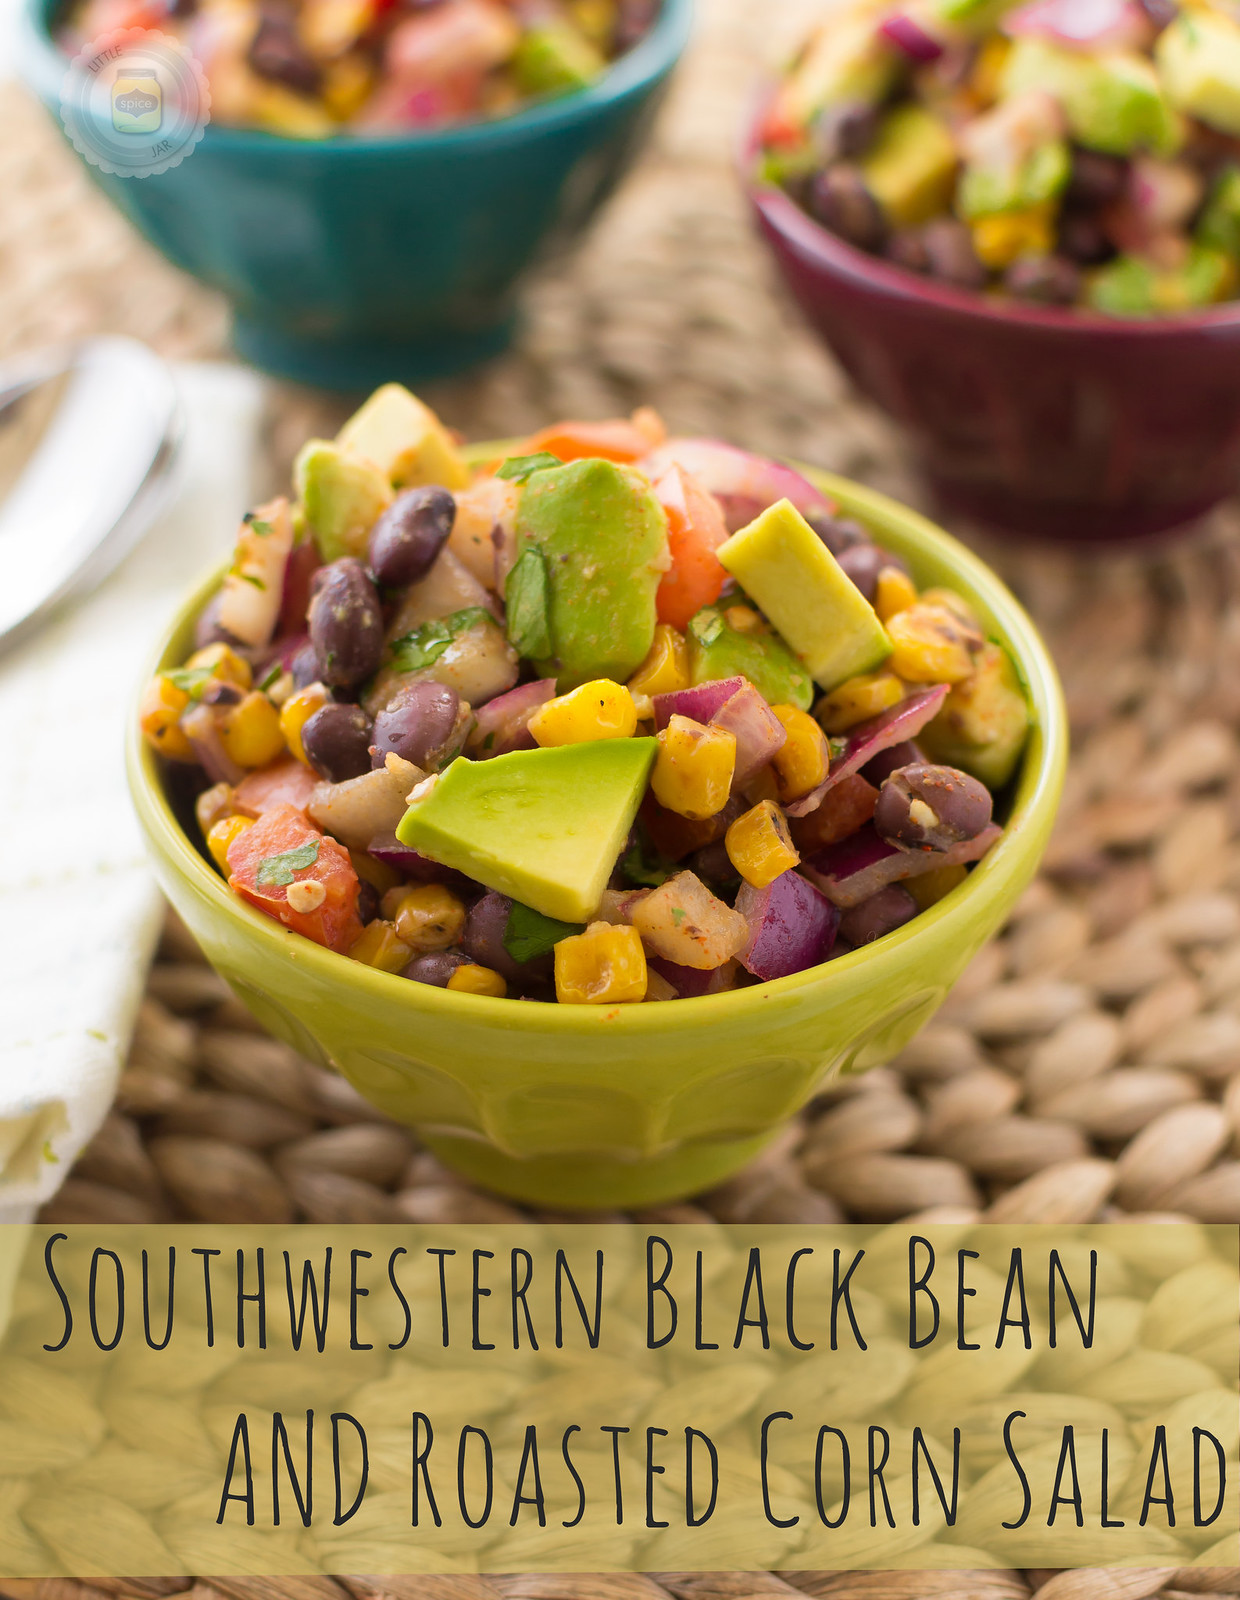 Southwestern Black Bean and Roasted Corn Salad text